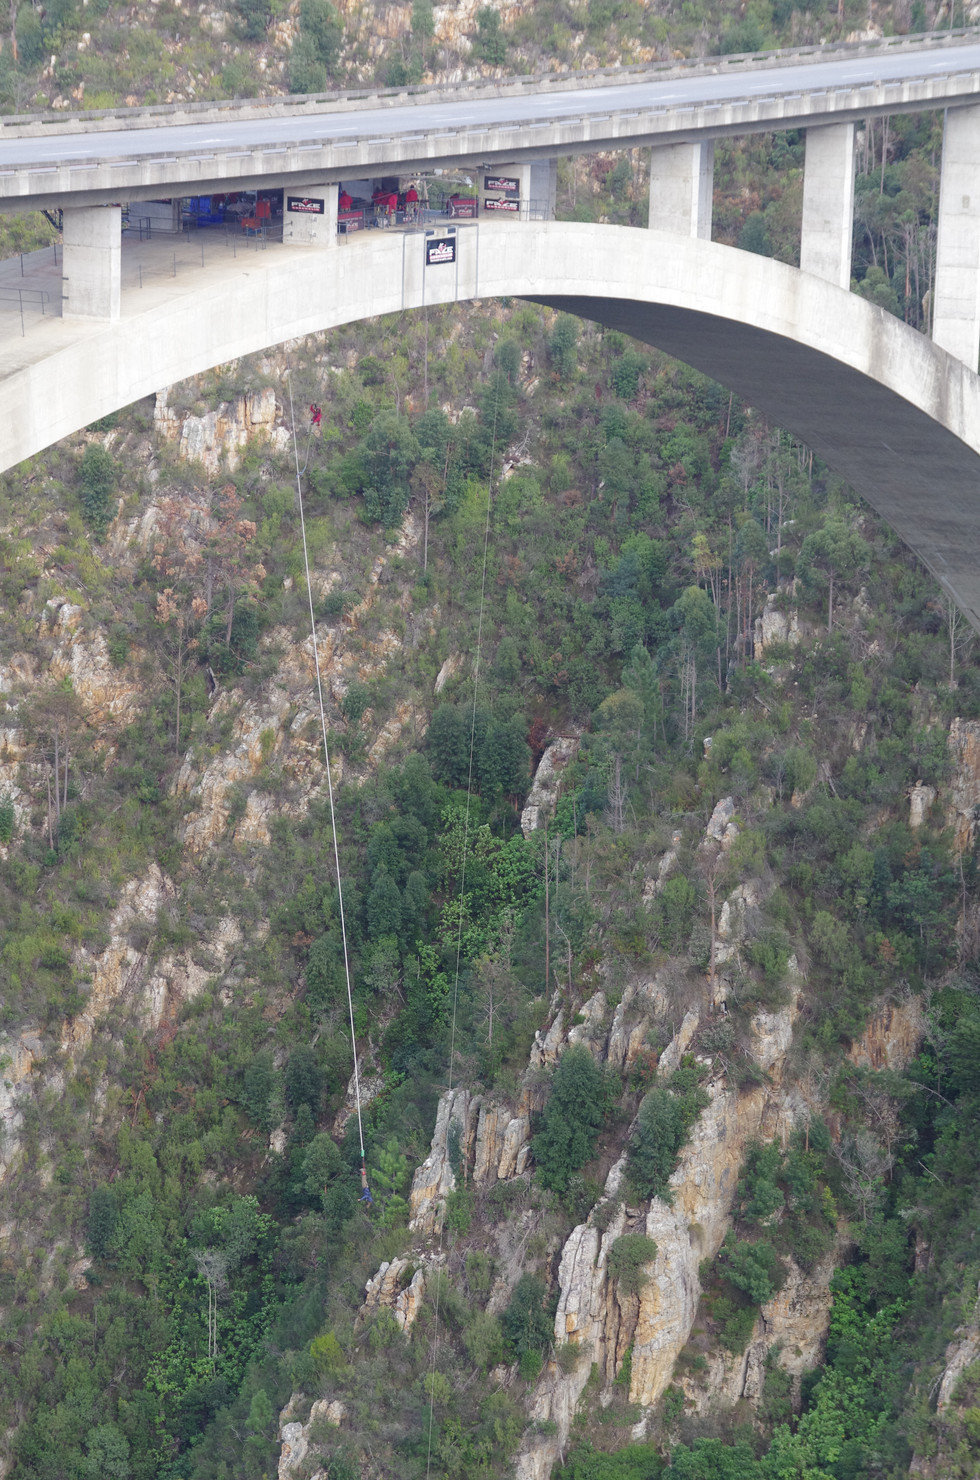 Bungee jumping in South Africa (during my undergraduate field school course)